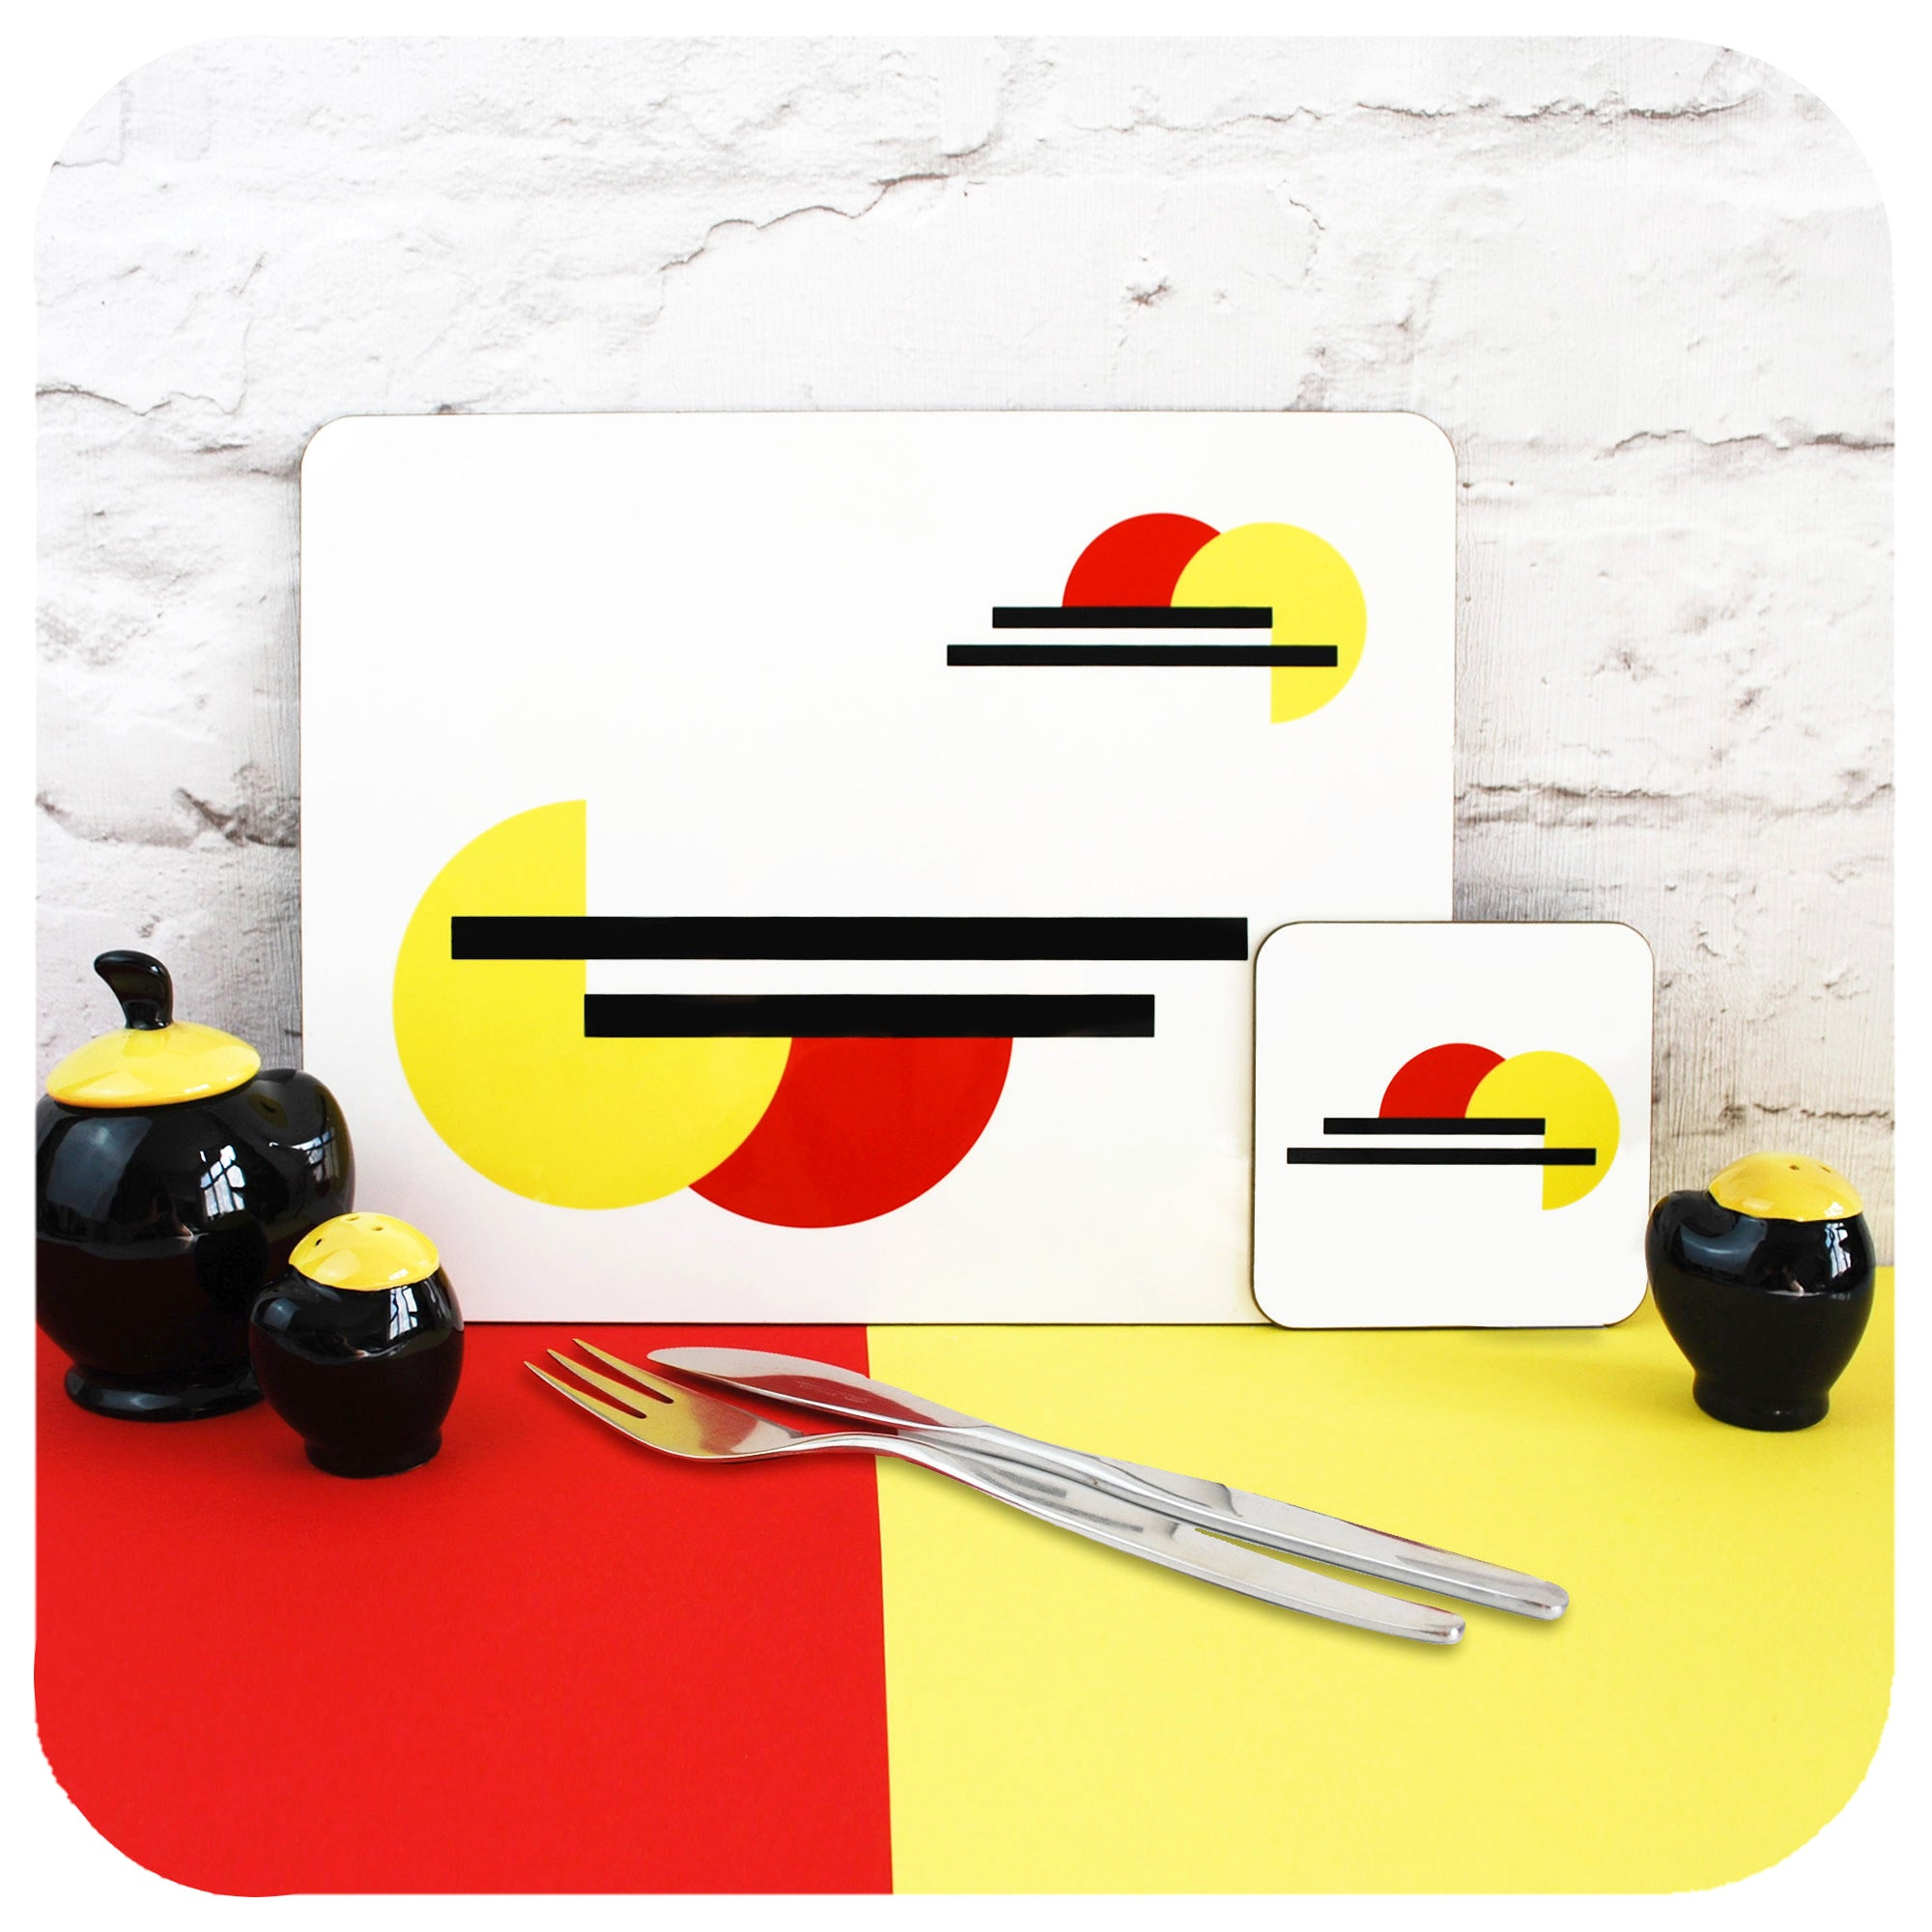 Bauhaus Placemat and matching Coaster with vintage cutlery and cruet set | The Inkabilly Emporium | The Inkabilly Emporium